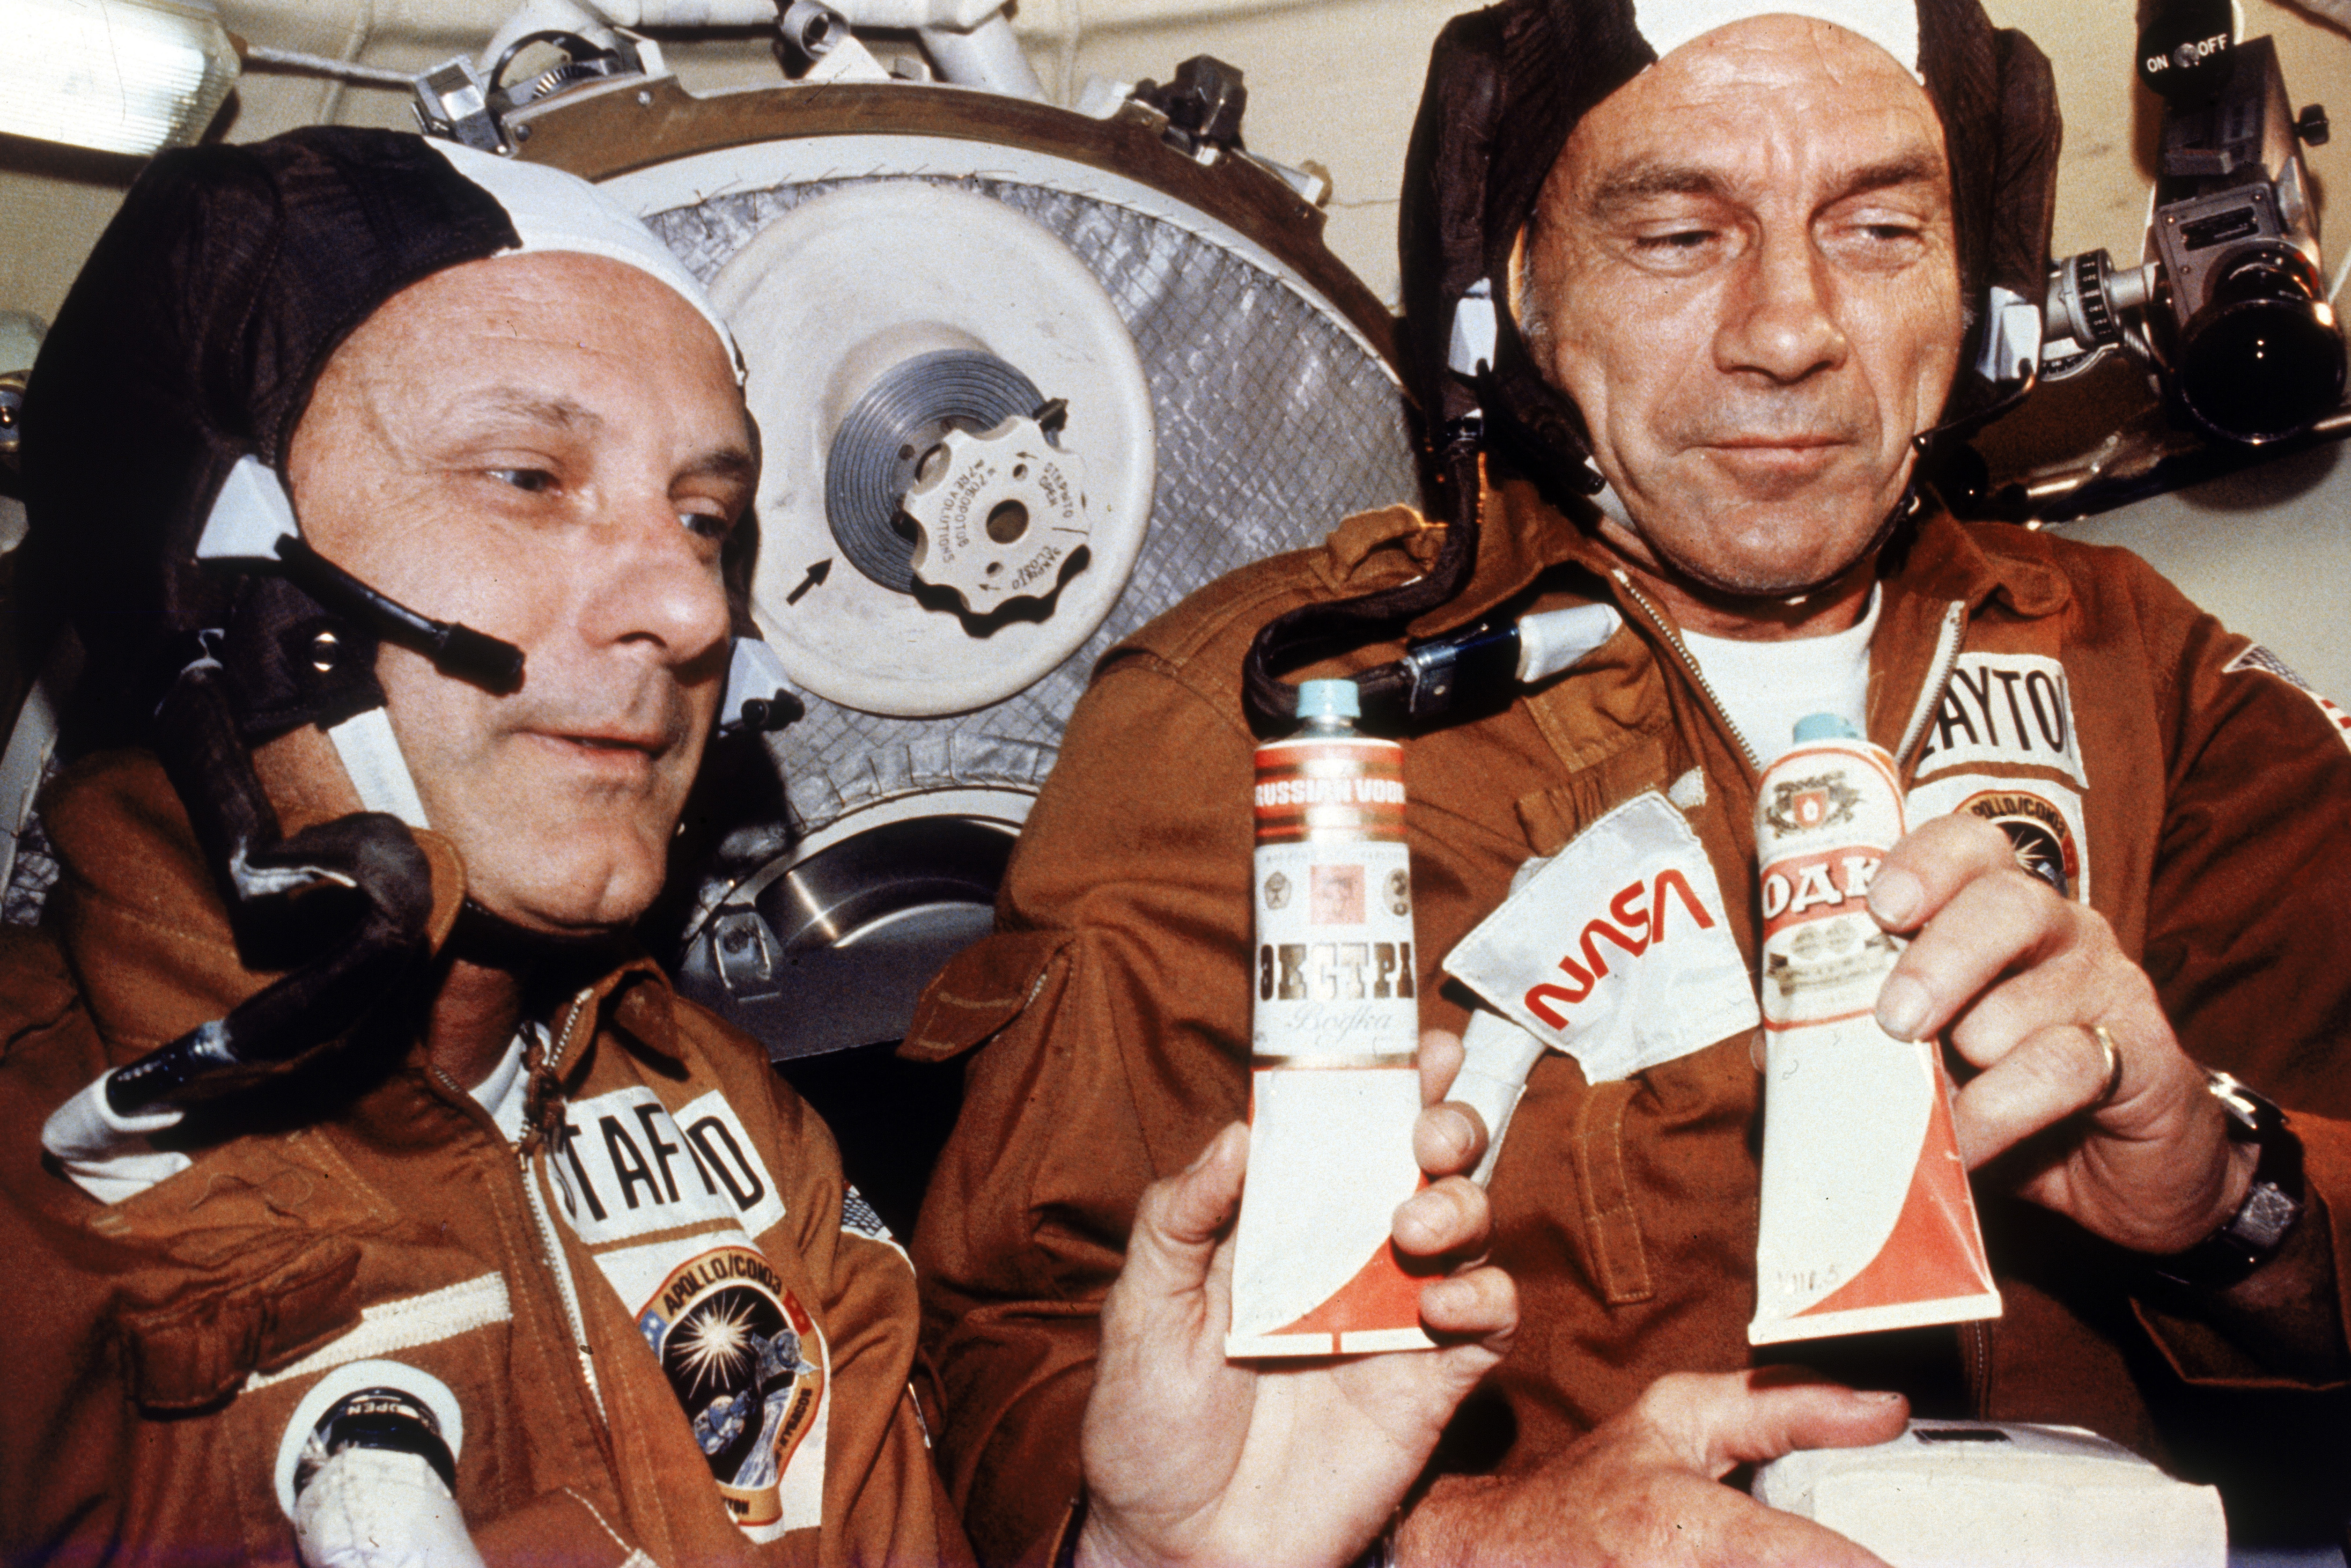 American astronauts Tom Stafford and Deke Slayton hold tubes of vodka given to them by Russian cosmonauts during their historic rendezvous and linkup of Apollo and Soyuz spacecraft.